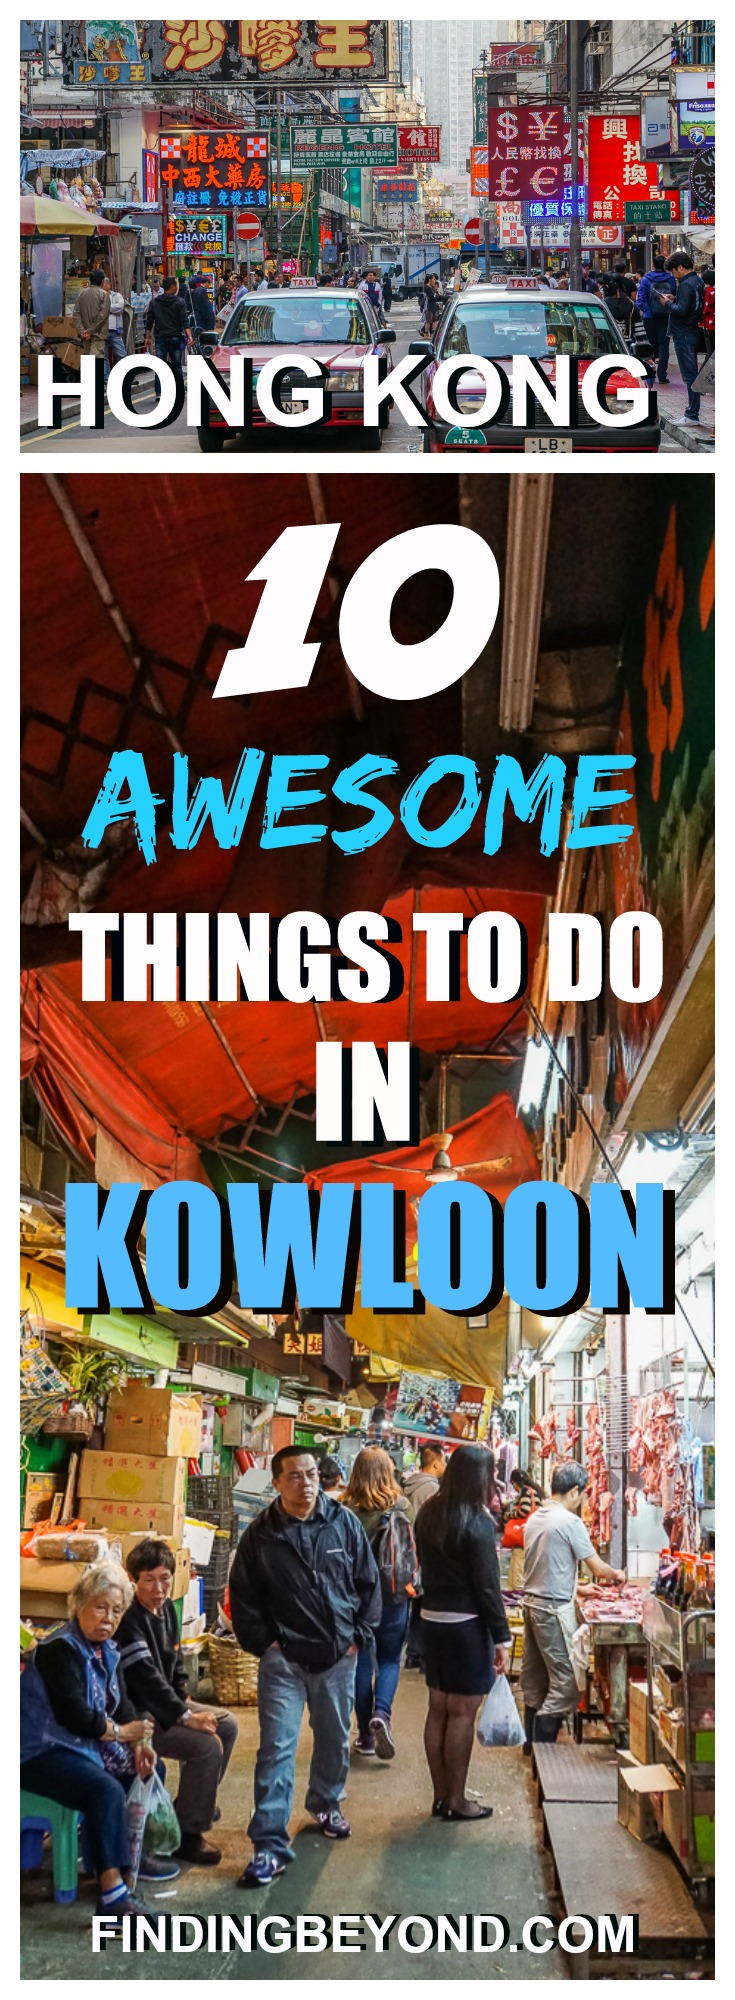 10 Awesome Things To Do In Kowloon, Hong Kong